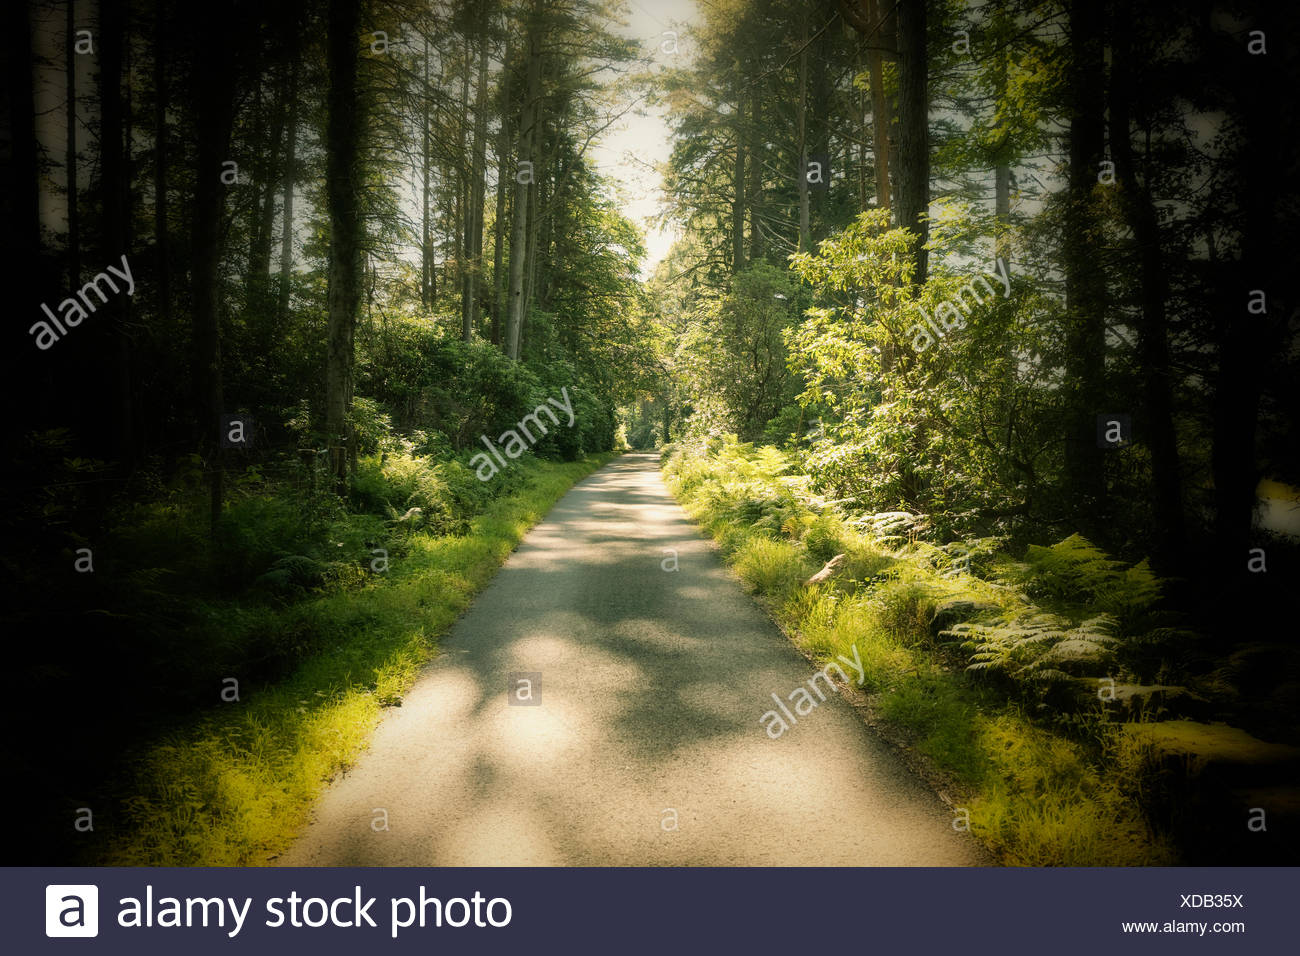 Country rural road forest sunlight vanishing point - Stock Image